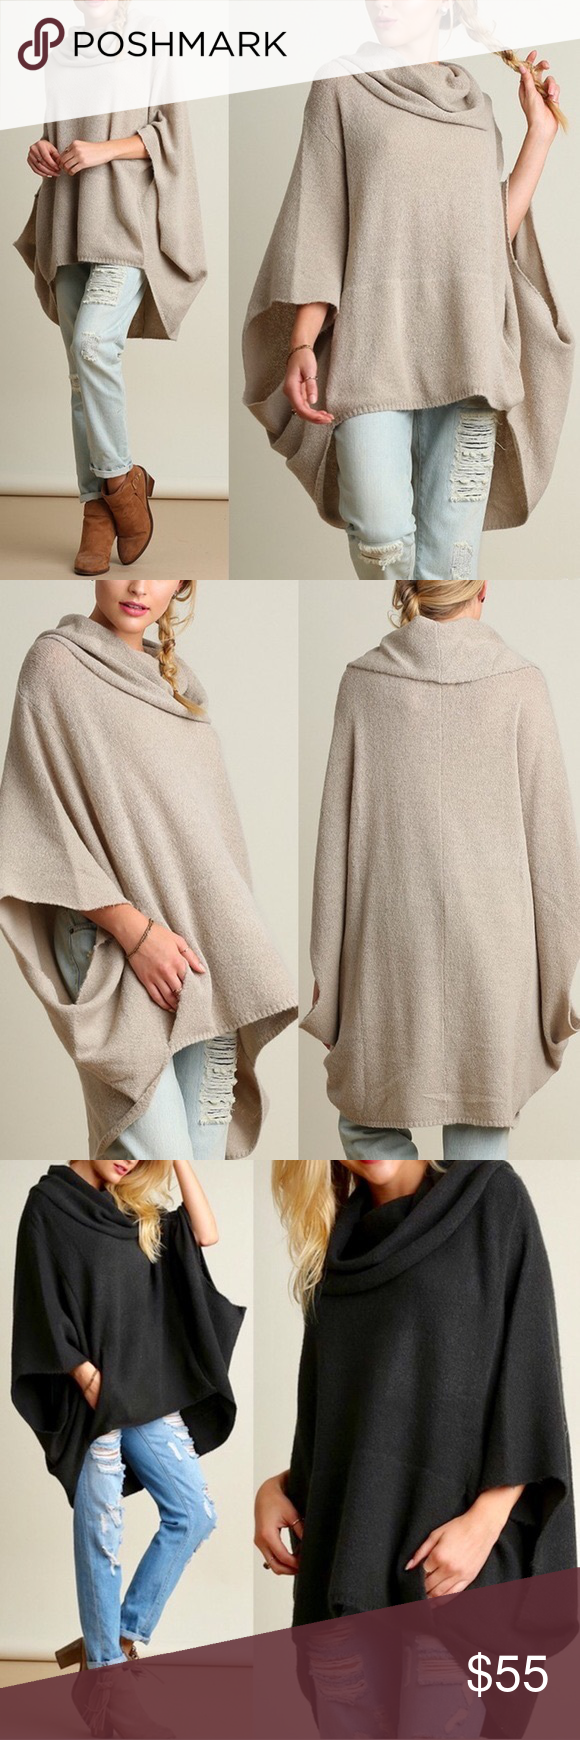 KAYCEE sweater - OATMEAL Boutique | Ponchos, Dark and Loose knit ...